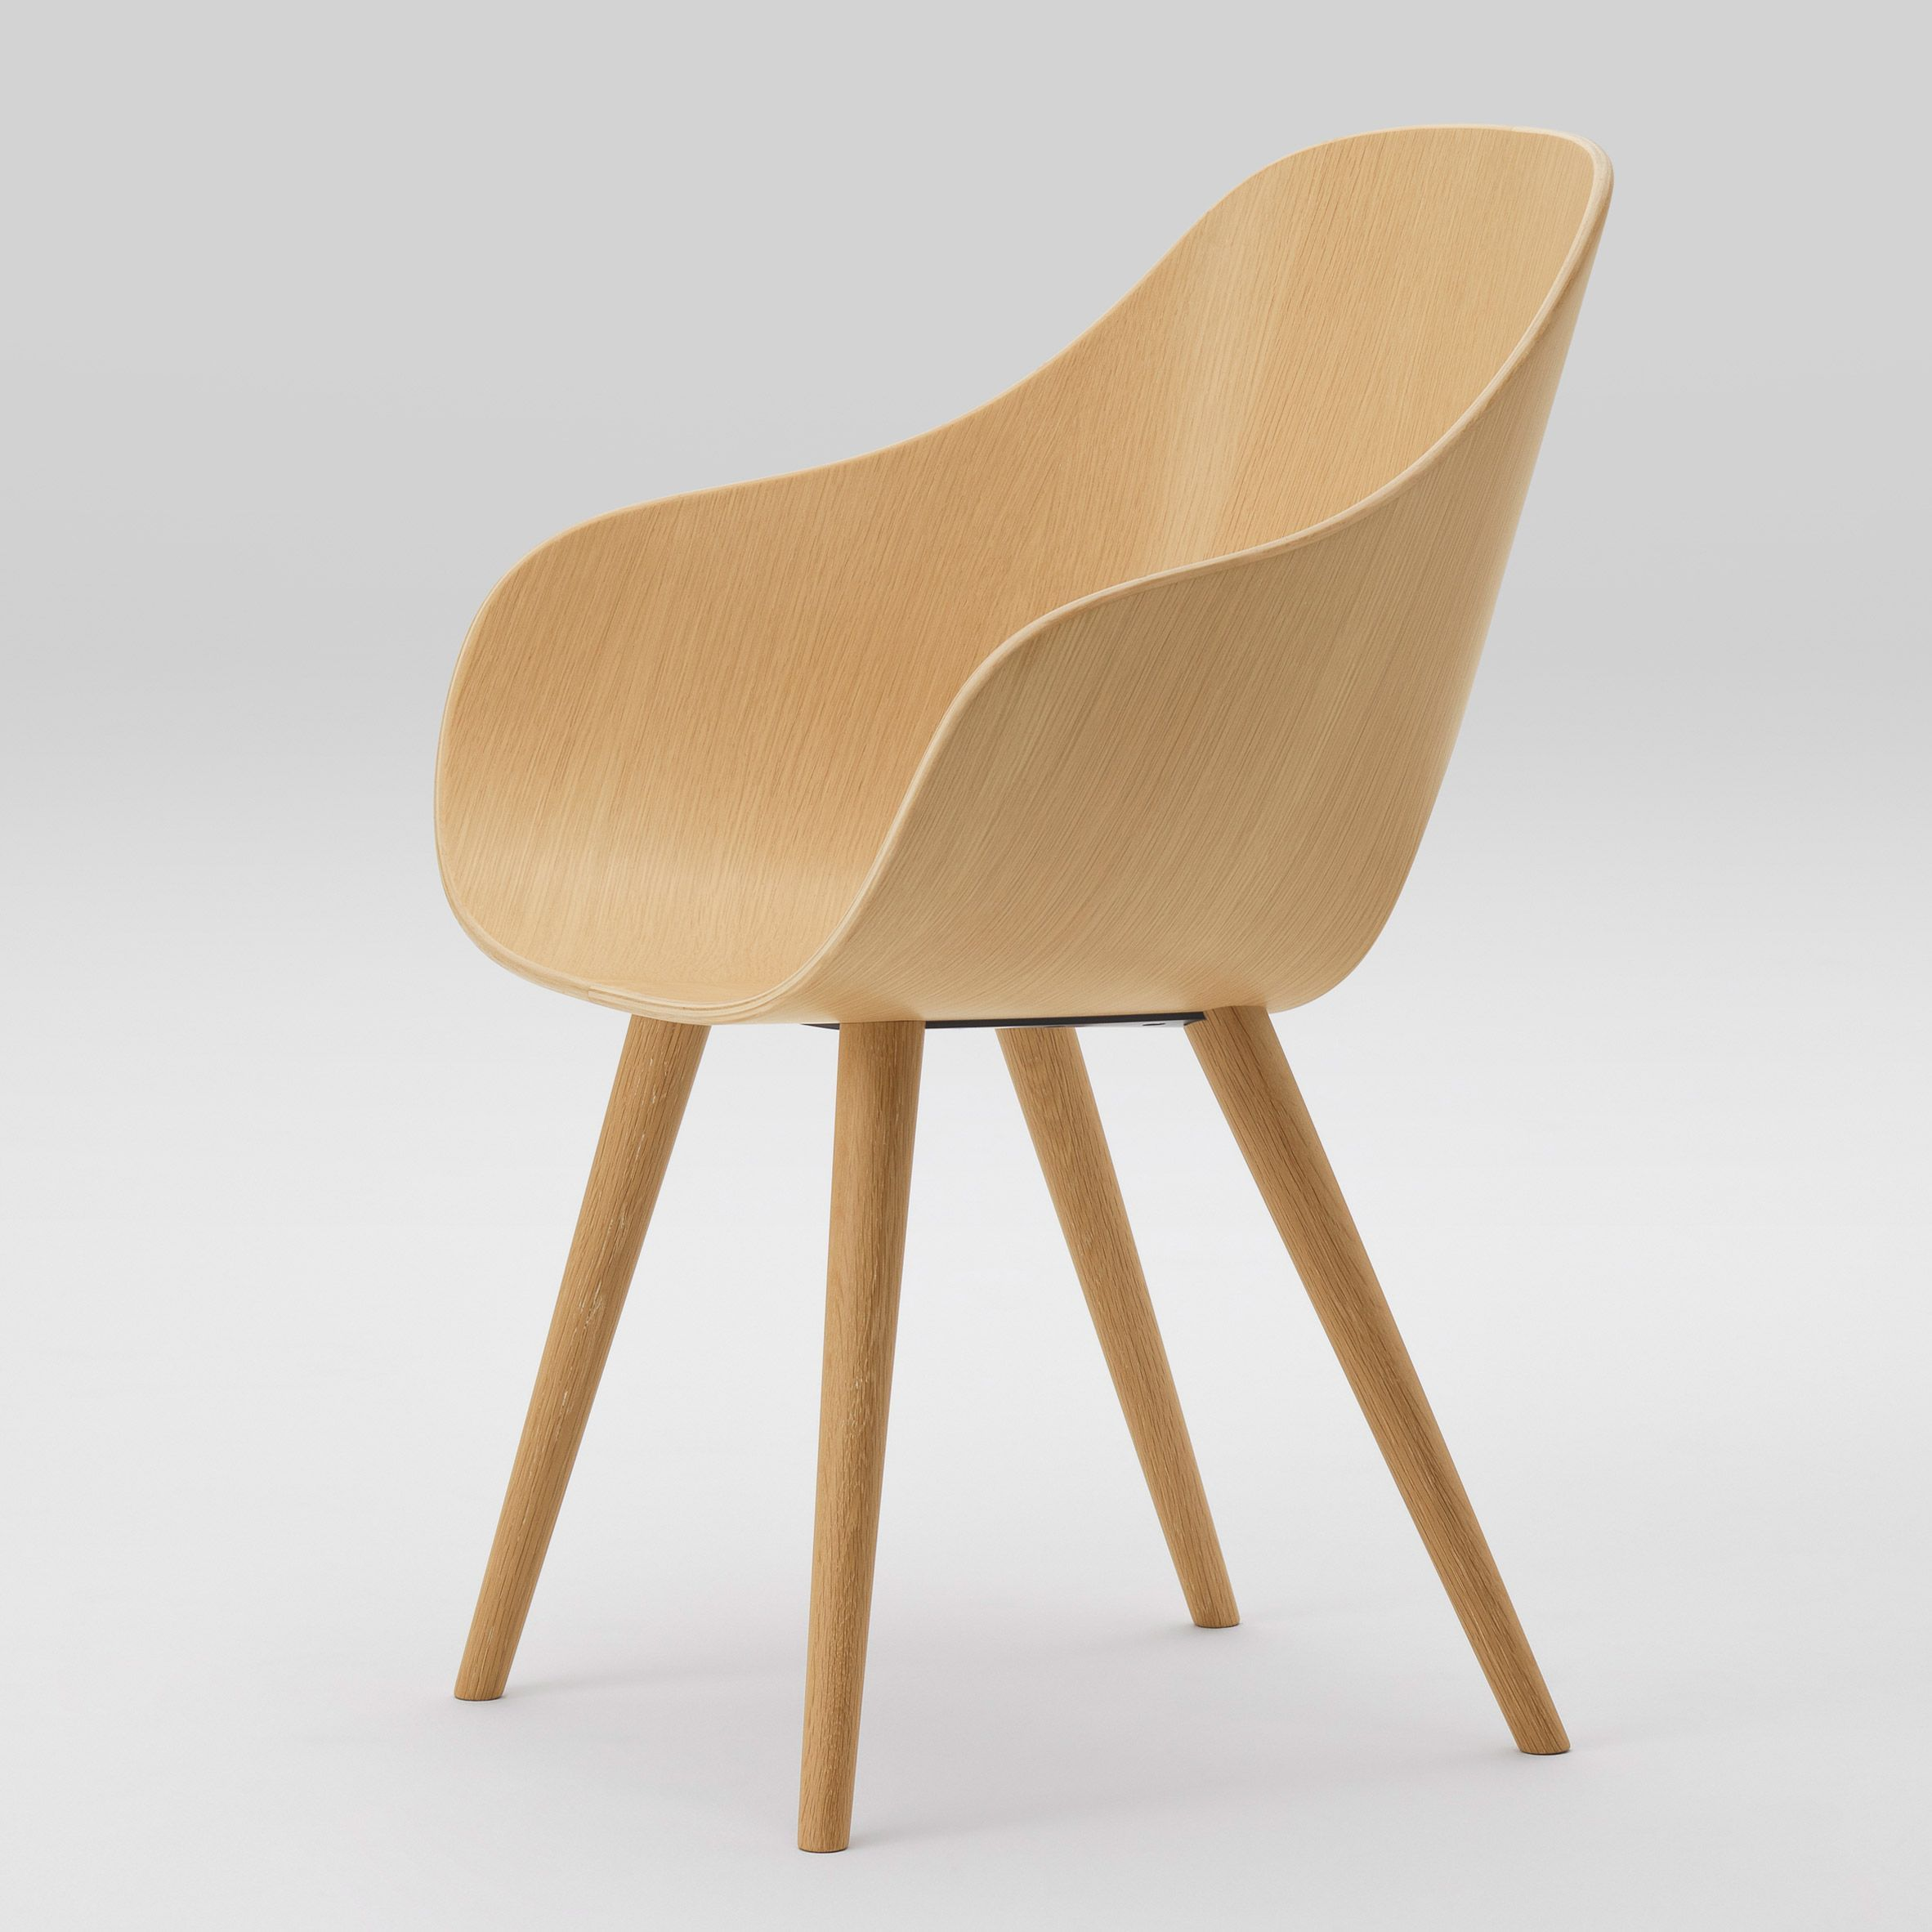 maruni celebrates 90 years with wooden chairs by naoto fukasawa and